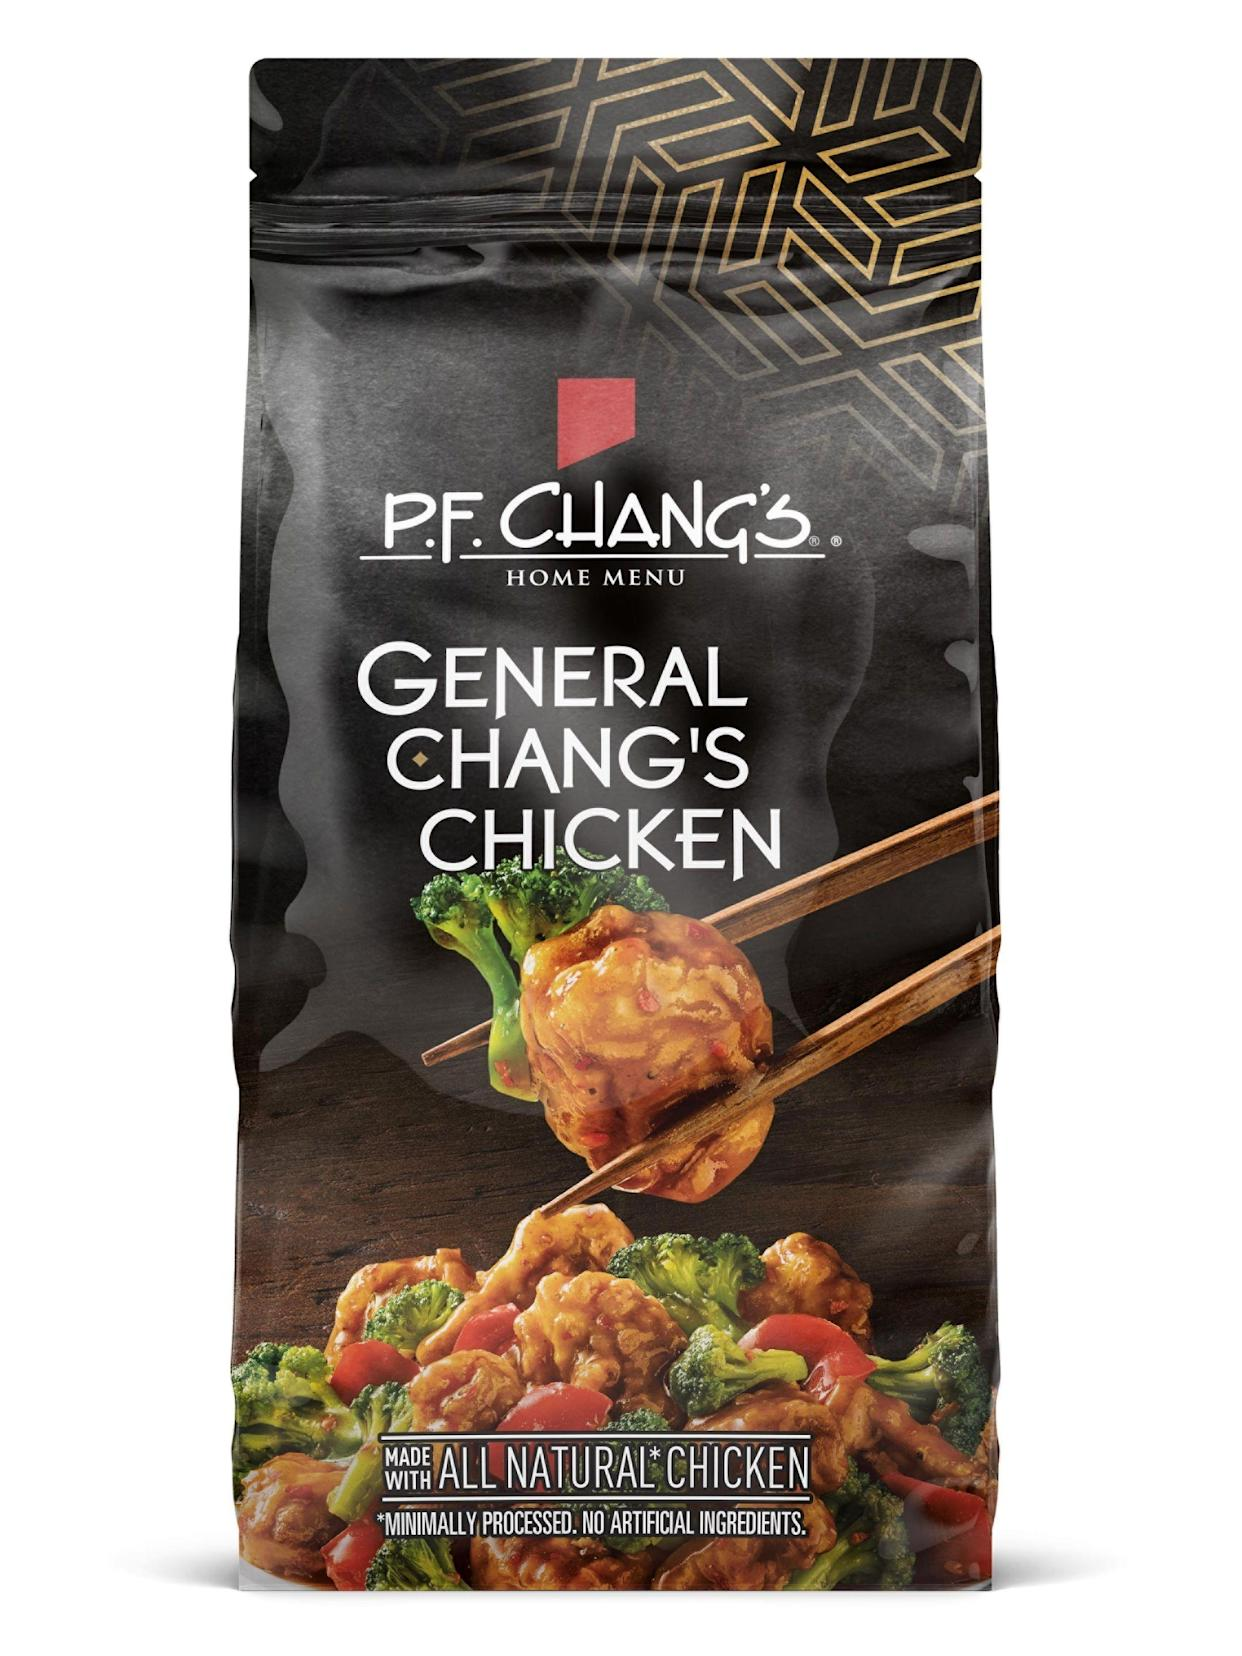 PF Chang's General Chang's Chicken